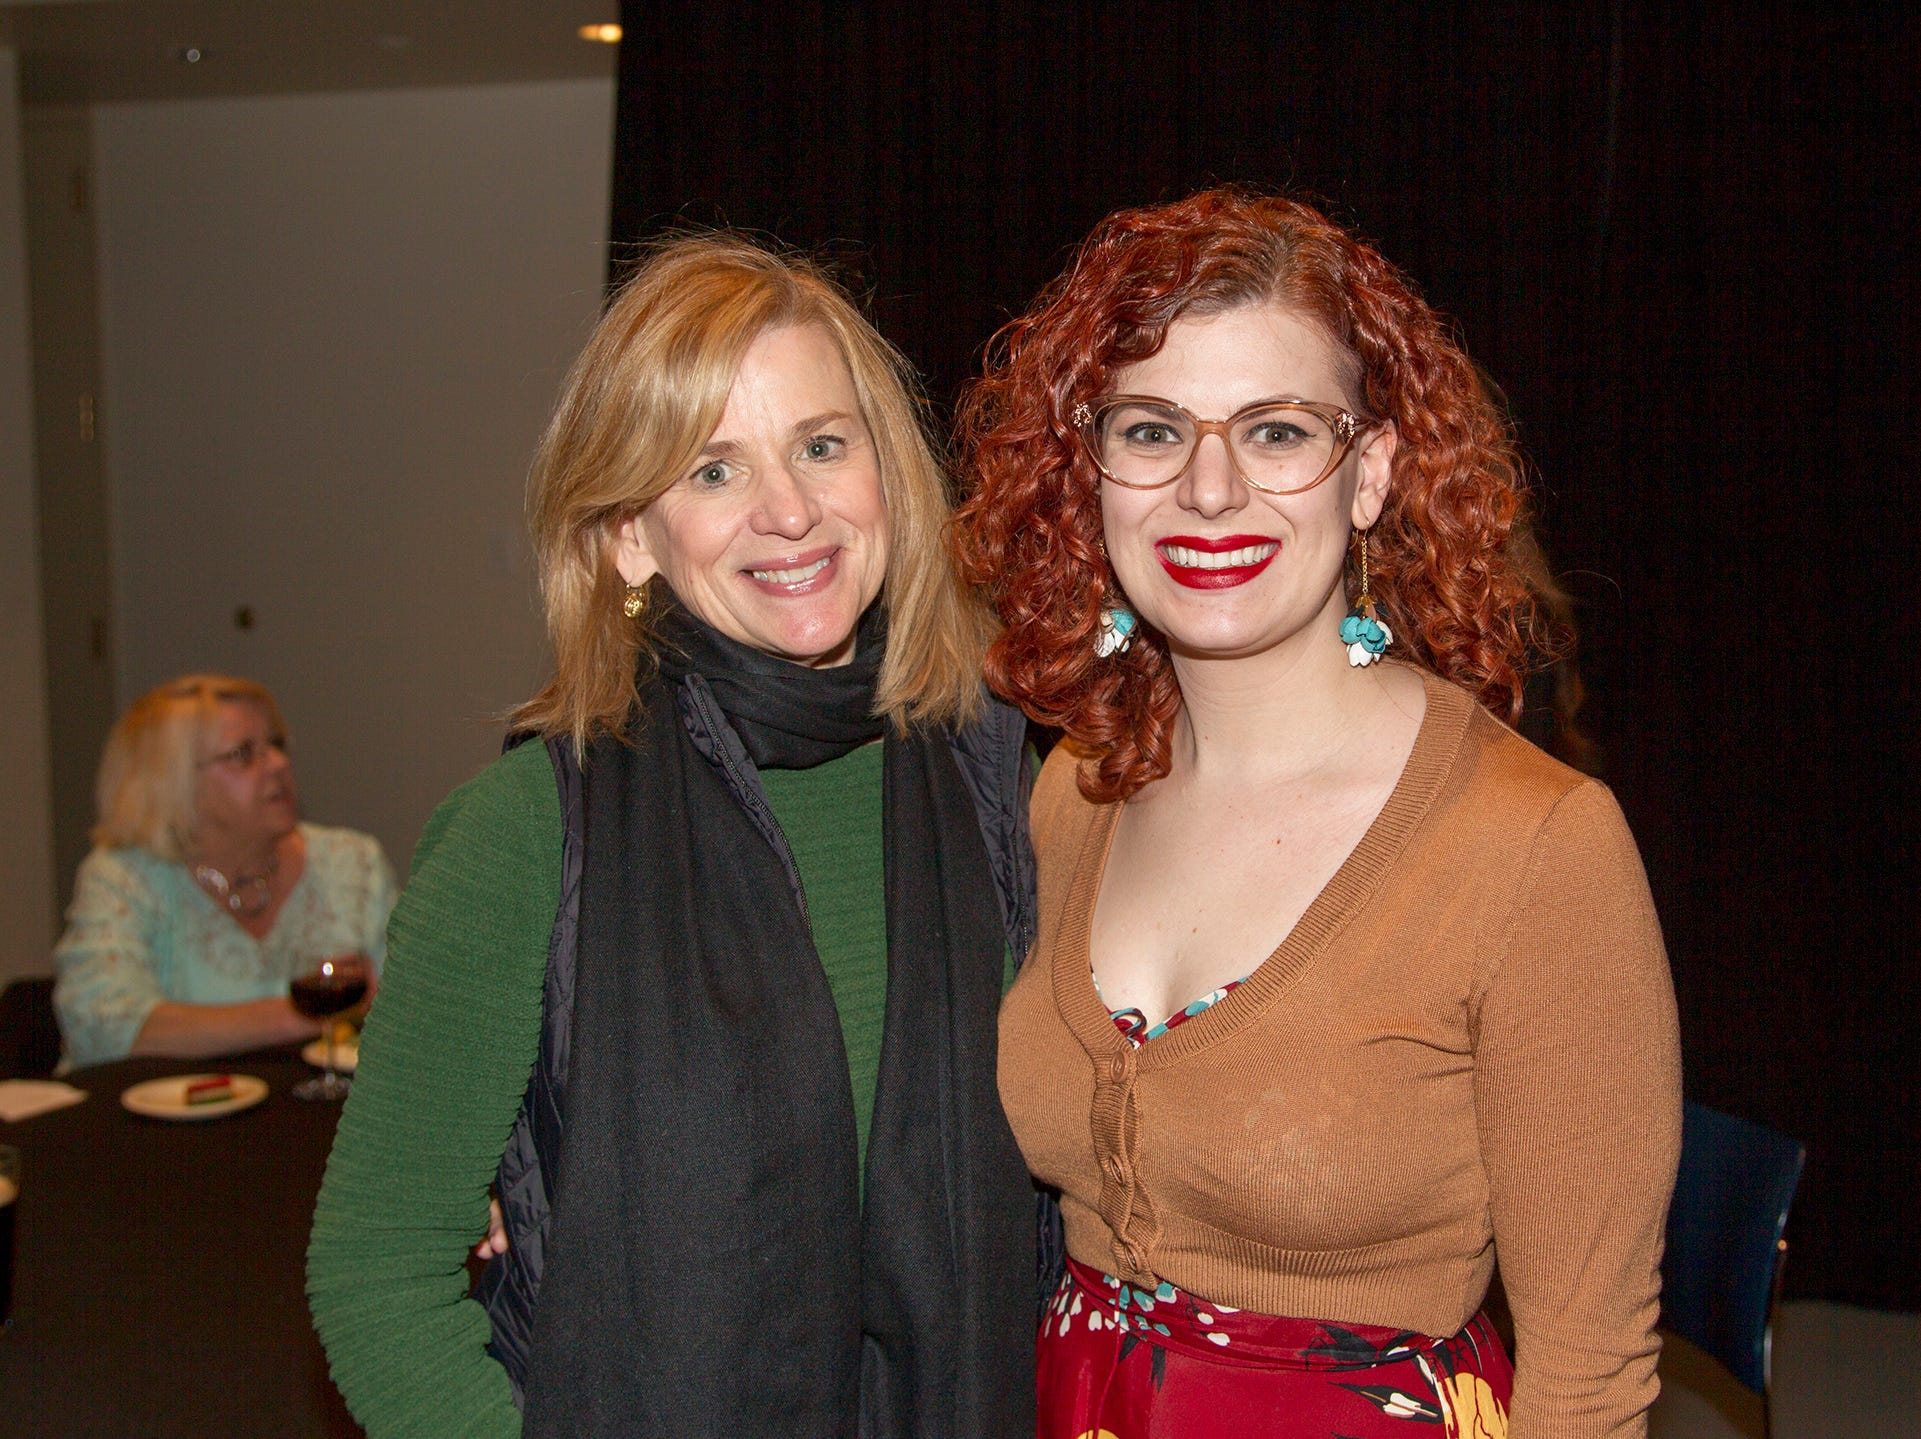 Deirdre Dimauro, Kristin Dimauro. Anthony Kearns benefit concert to benefit Julia's Butterfly Foundation at West Side Presbyterian Church in Ridgewood. 3/23/2019